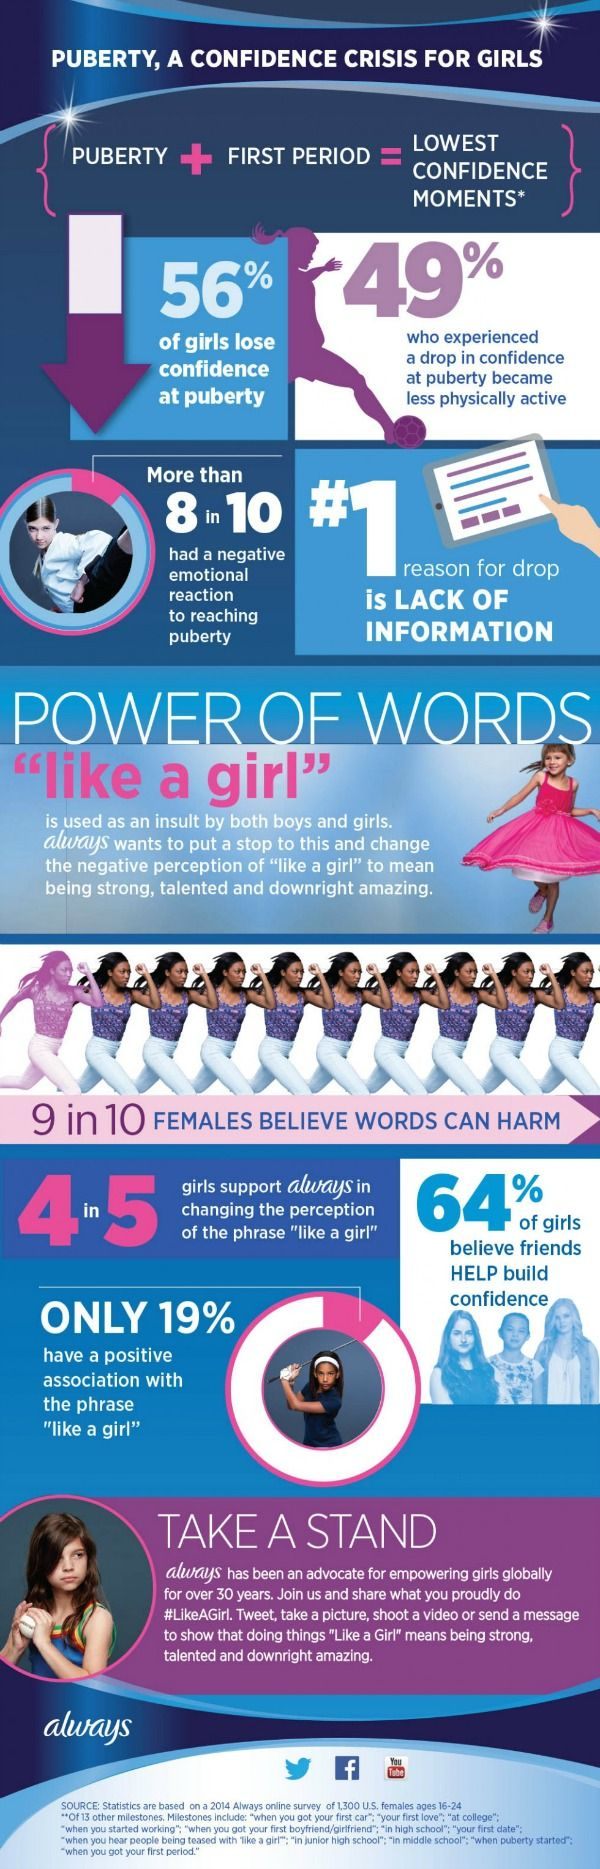 Be Like a Girl + Infographic on Girls and Confidence #LikeAGirl - Callista's Ramblings